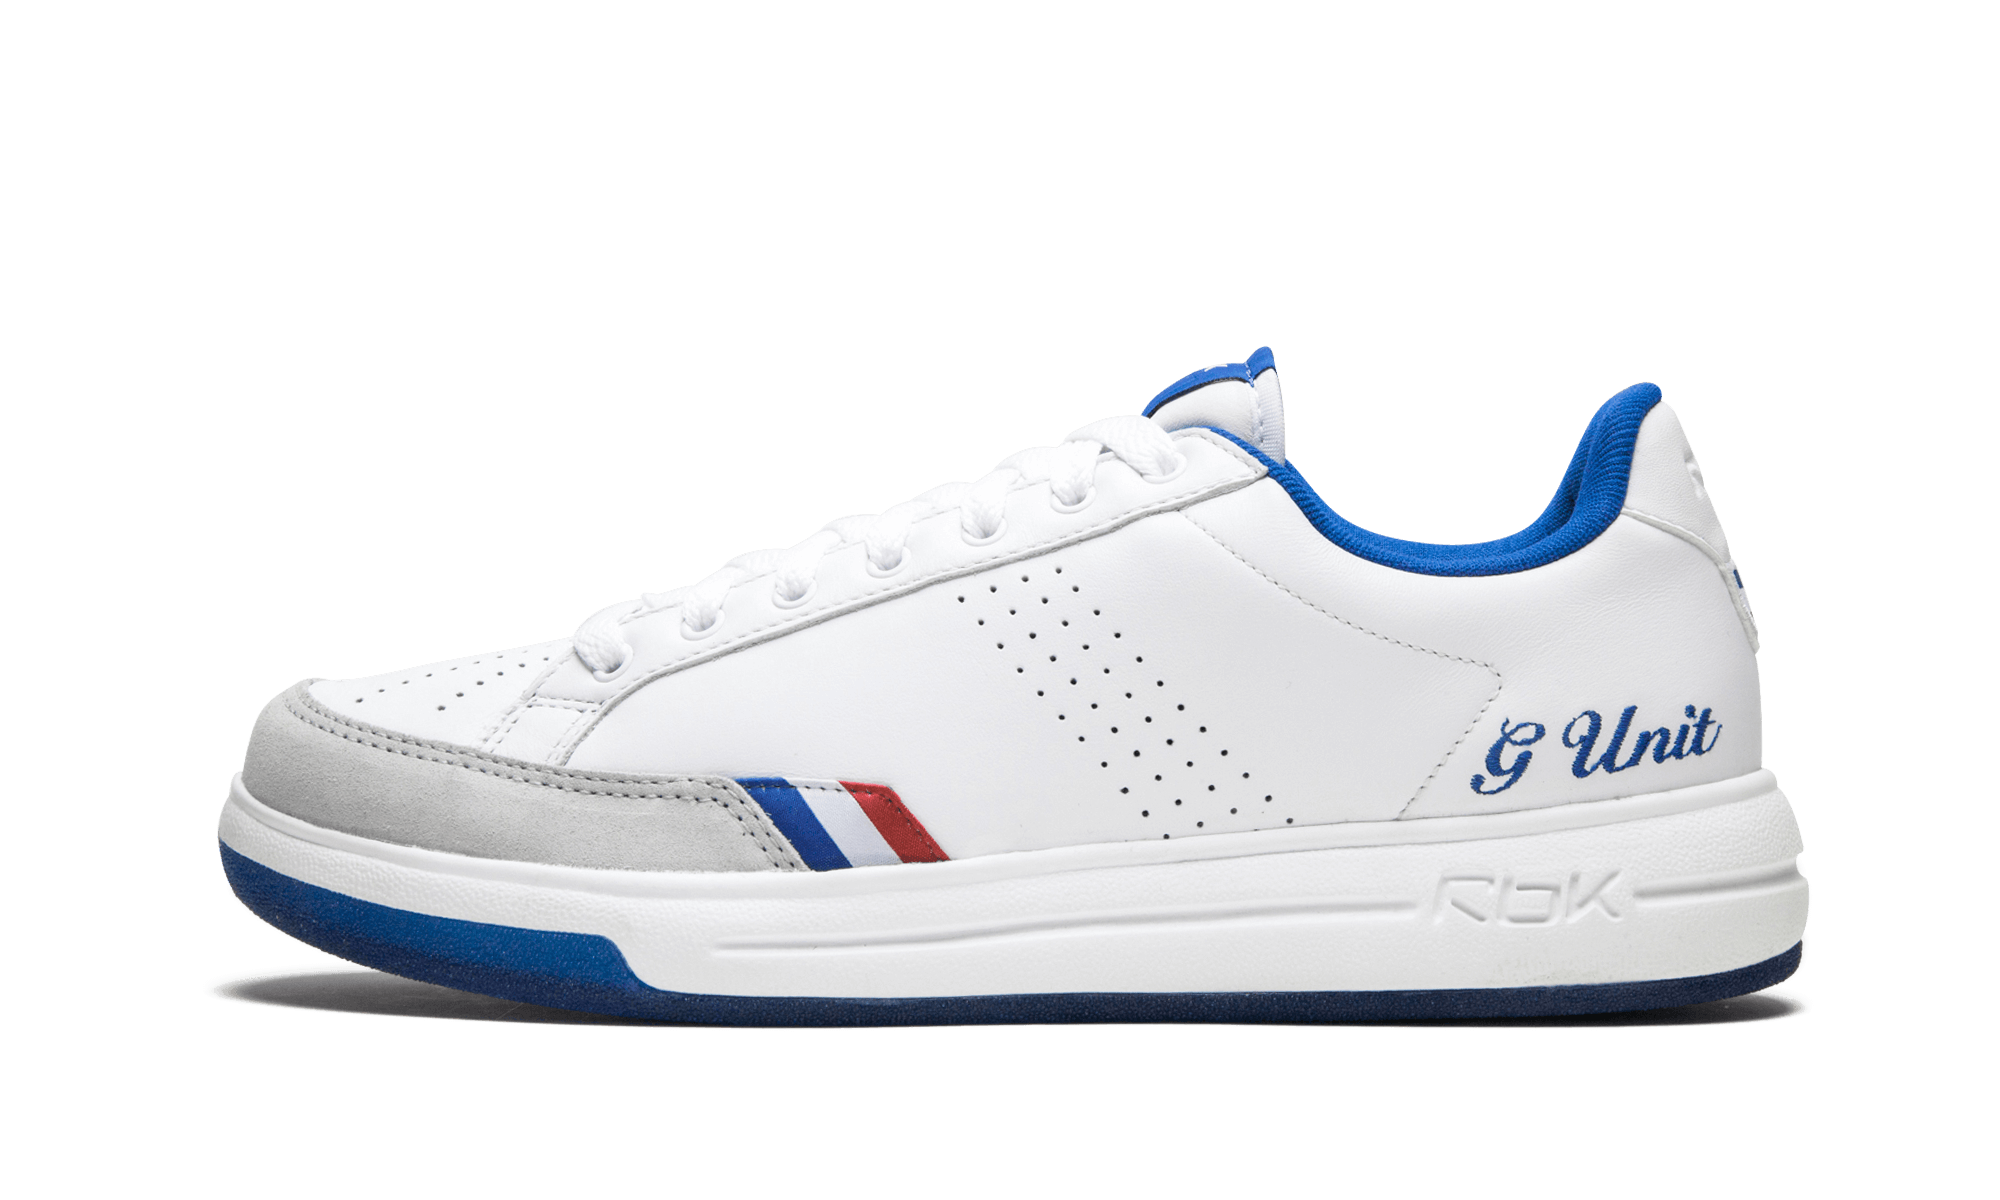 Pin on G unit sneakers